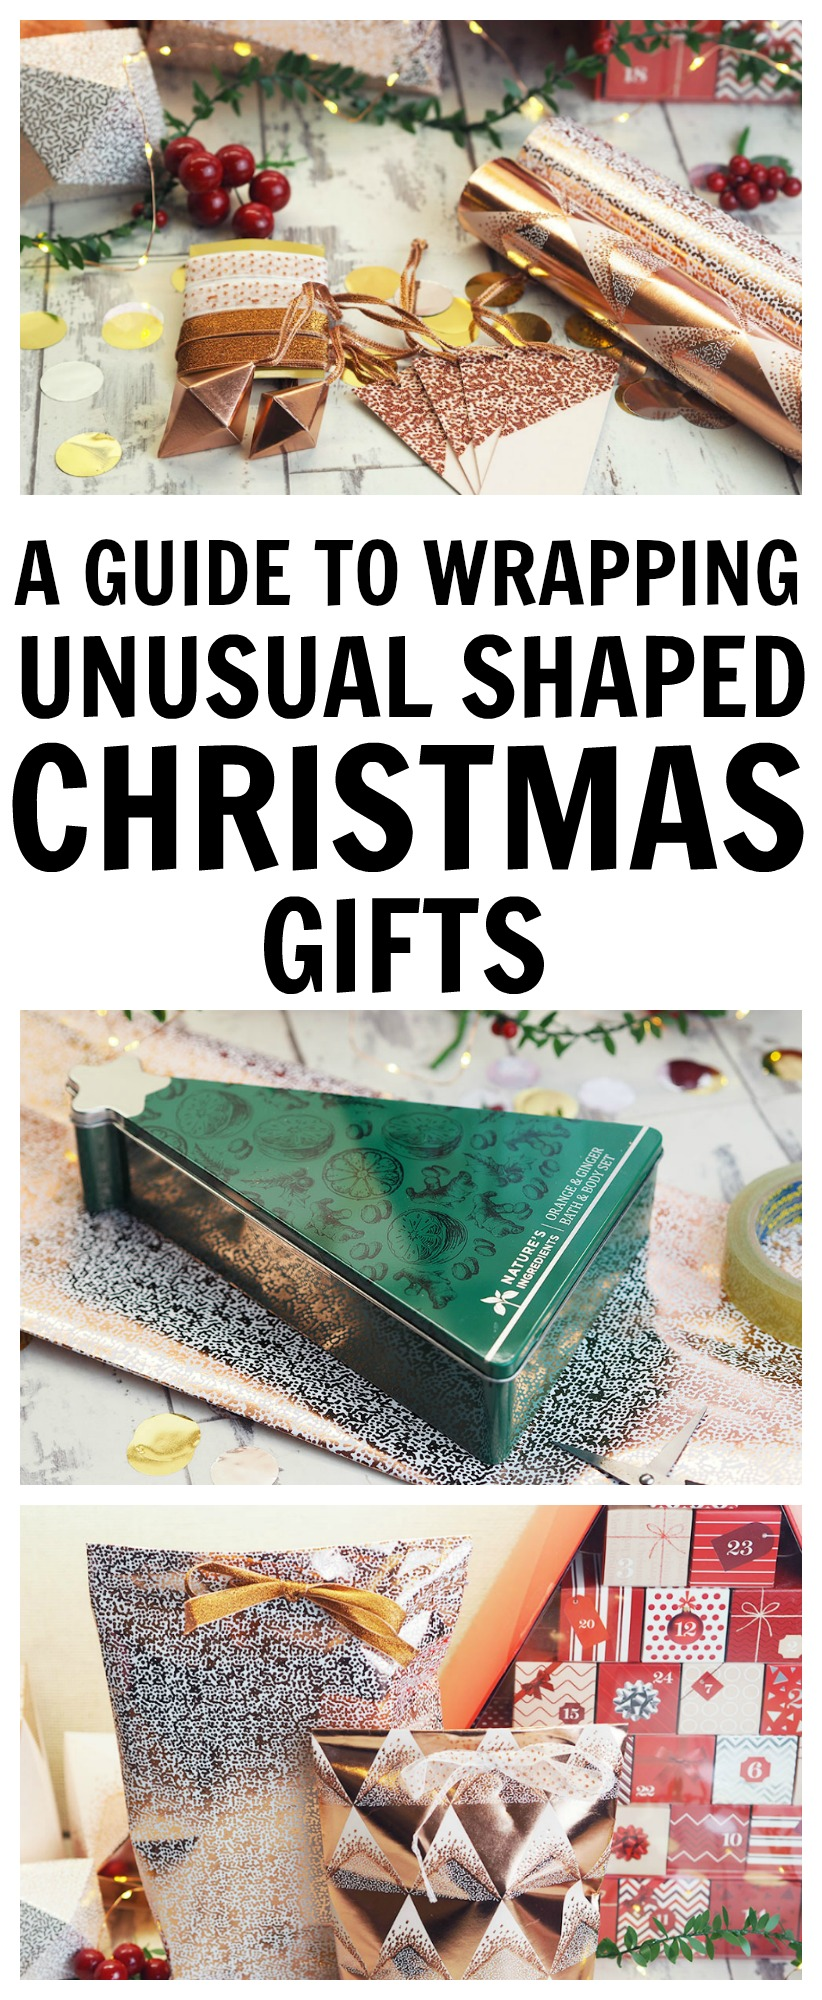 M&S Christmas Wrapping - A guide to wrapping unusual shaped gifts!